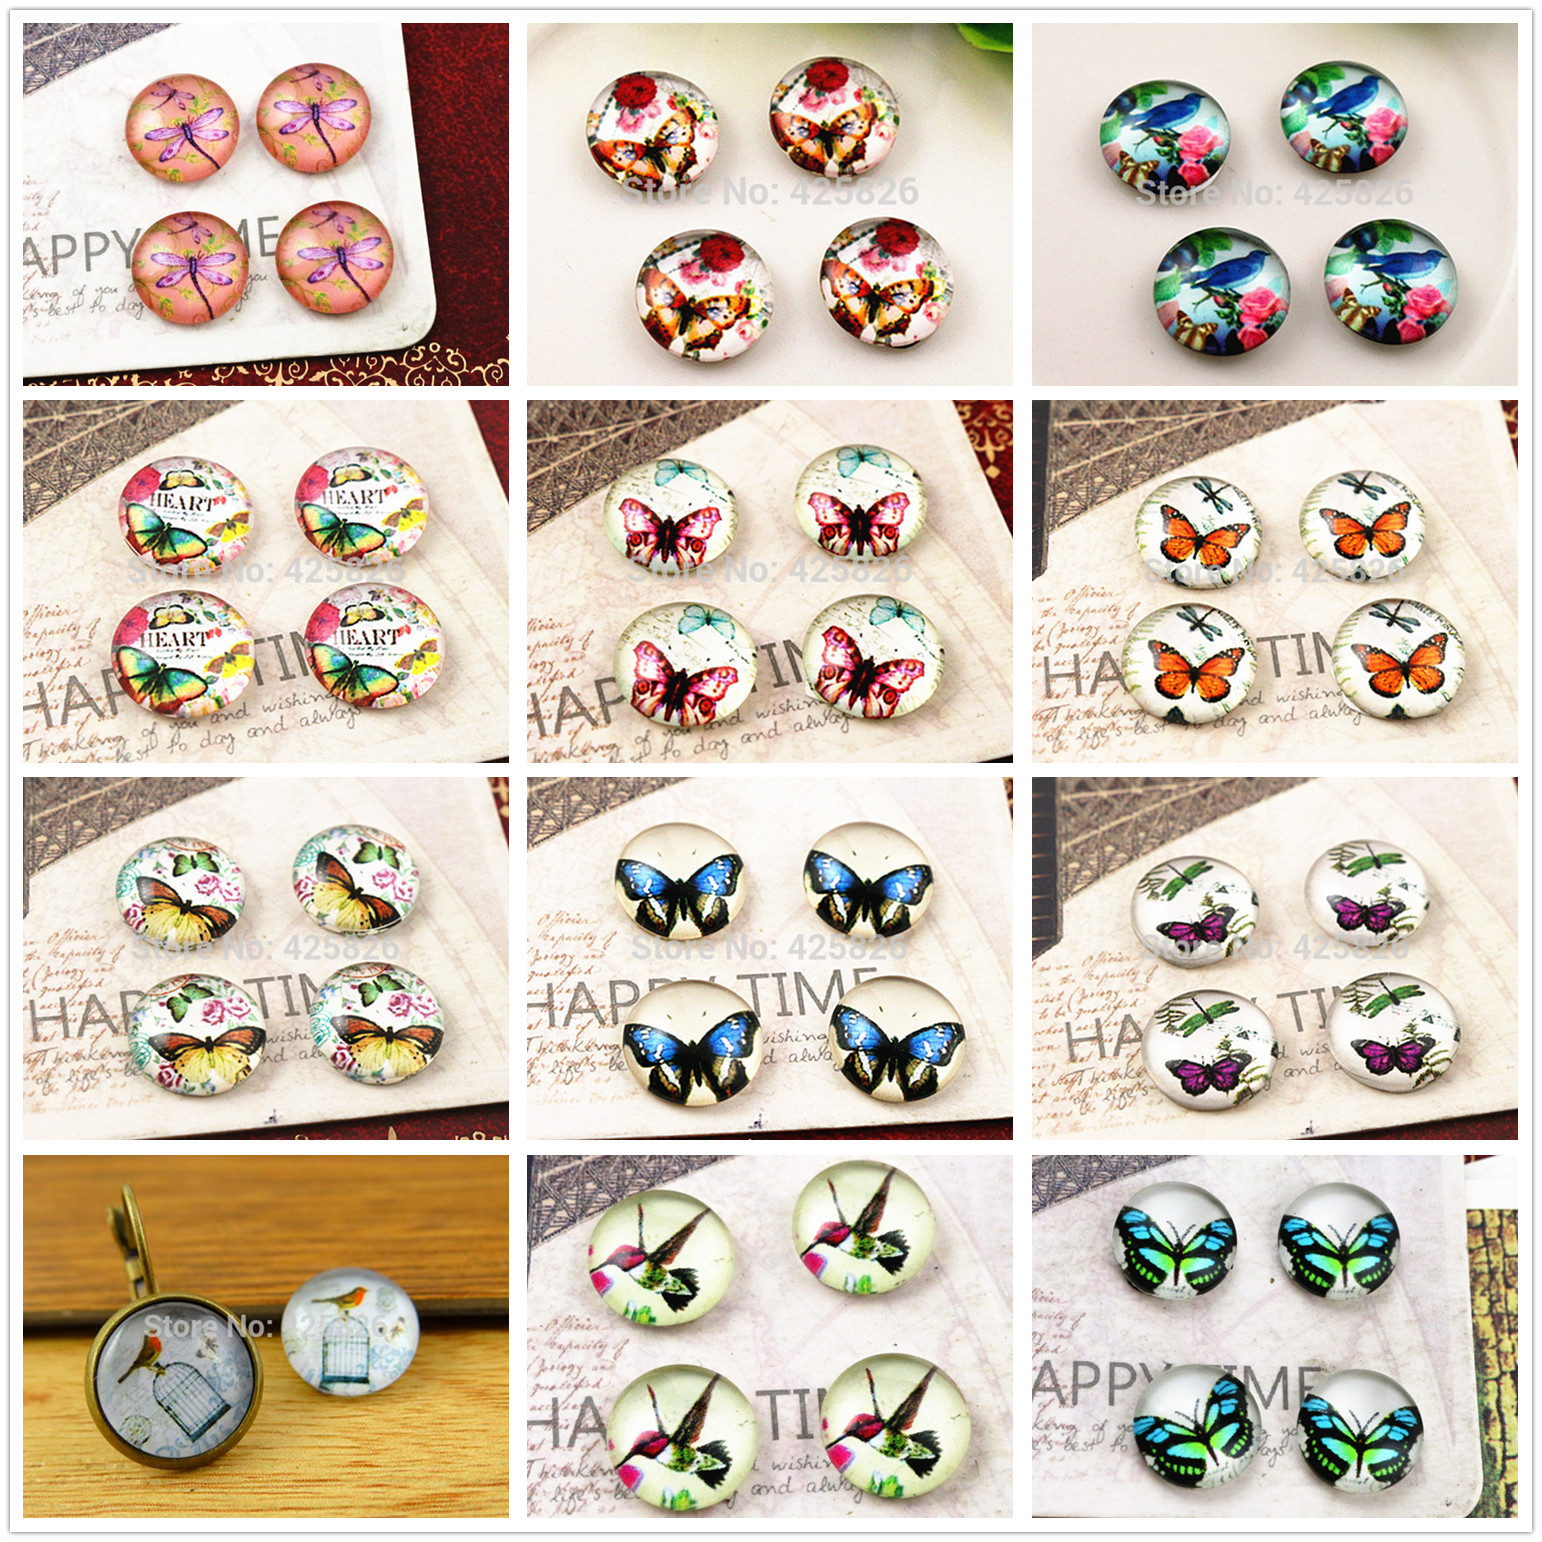 Hot Sale 20pcs 12mm Handmade Photo Glass Cabochons (Butterfly And Bird Series)